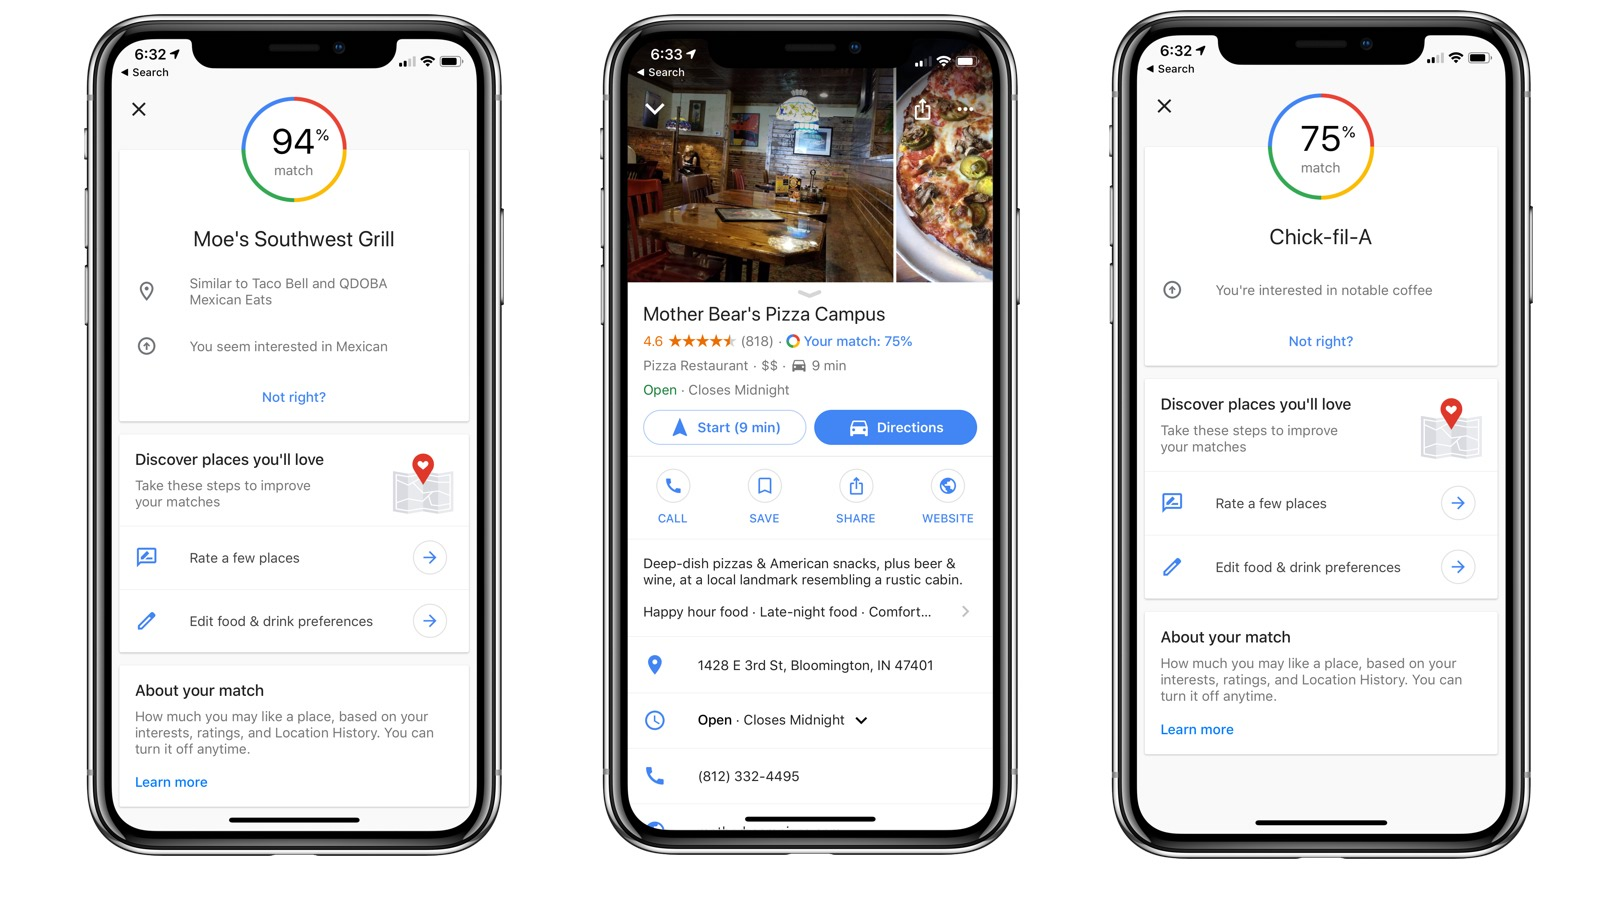 Google Maps for iOS predicts which restaurants you will like ... on holiday marketing advertising, parts store advertising, red book advertising, bulk email advertising, fb advertising, 7 eleven advertising, ebook advertising, blu advertising, sony advertising, instagram advertising, quickbooks advertising, wechat advertising, sea monkey advertising, technicolor advertising, surface pro advertising, coca-cola advertising, streeteasy advertising, avaya advertising,